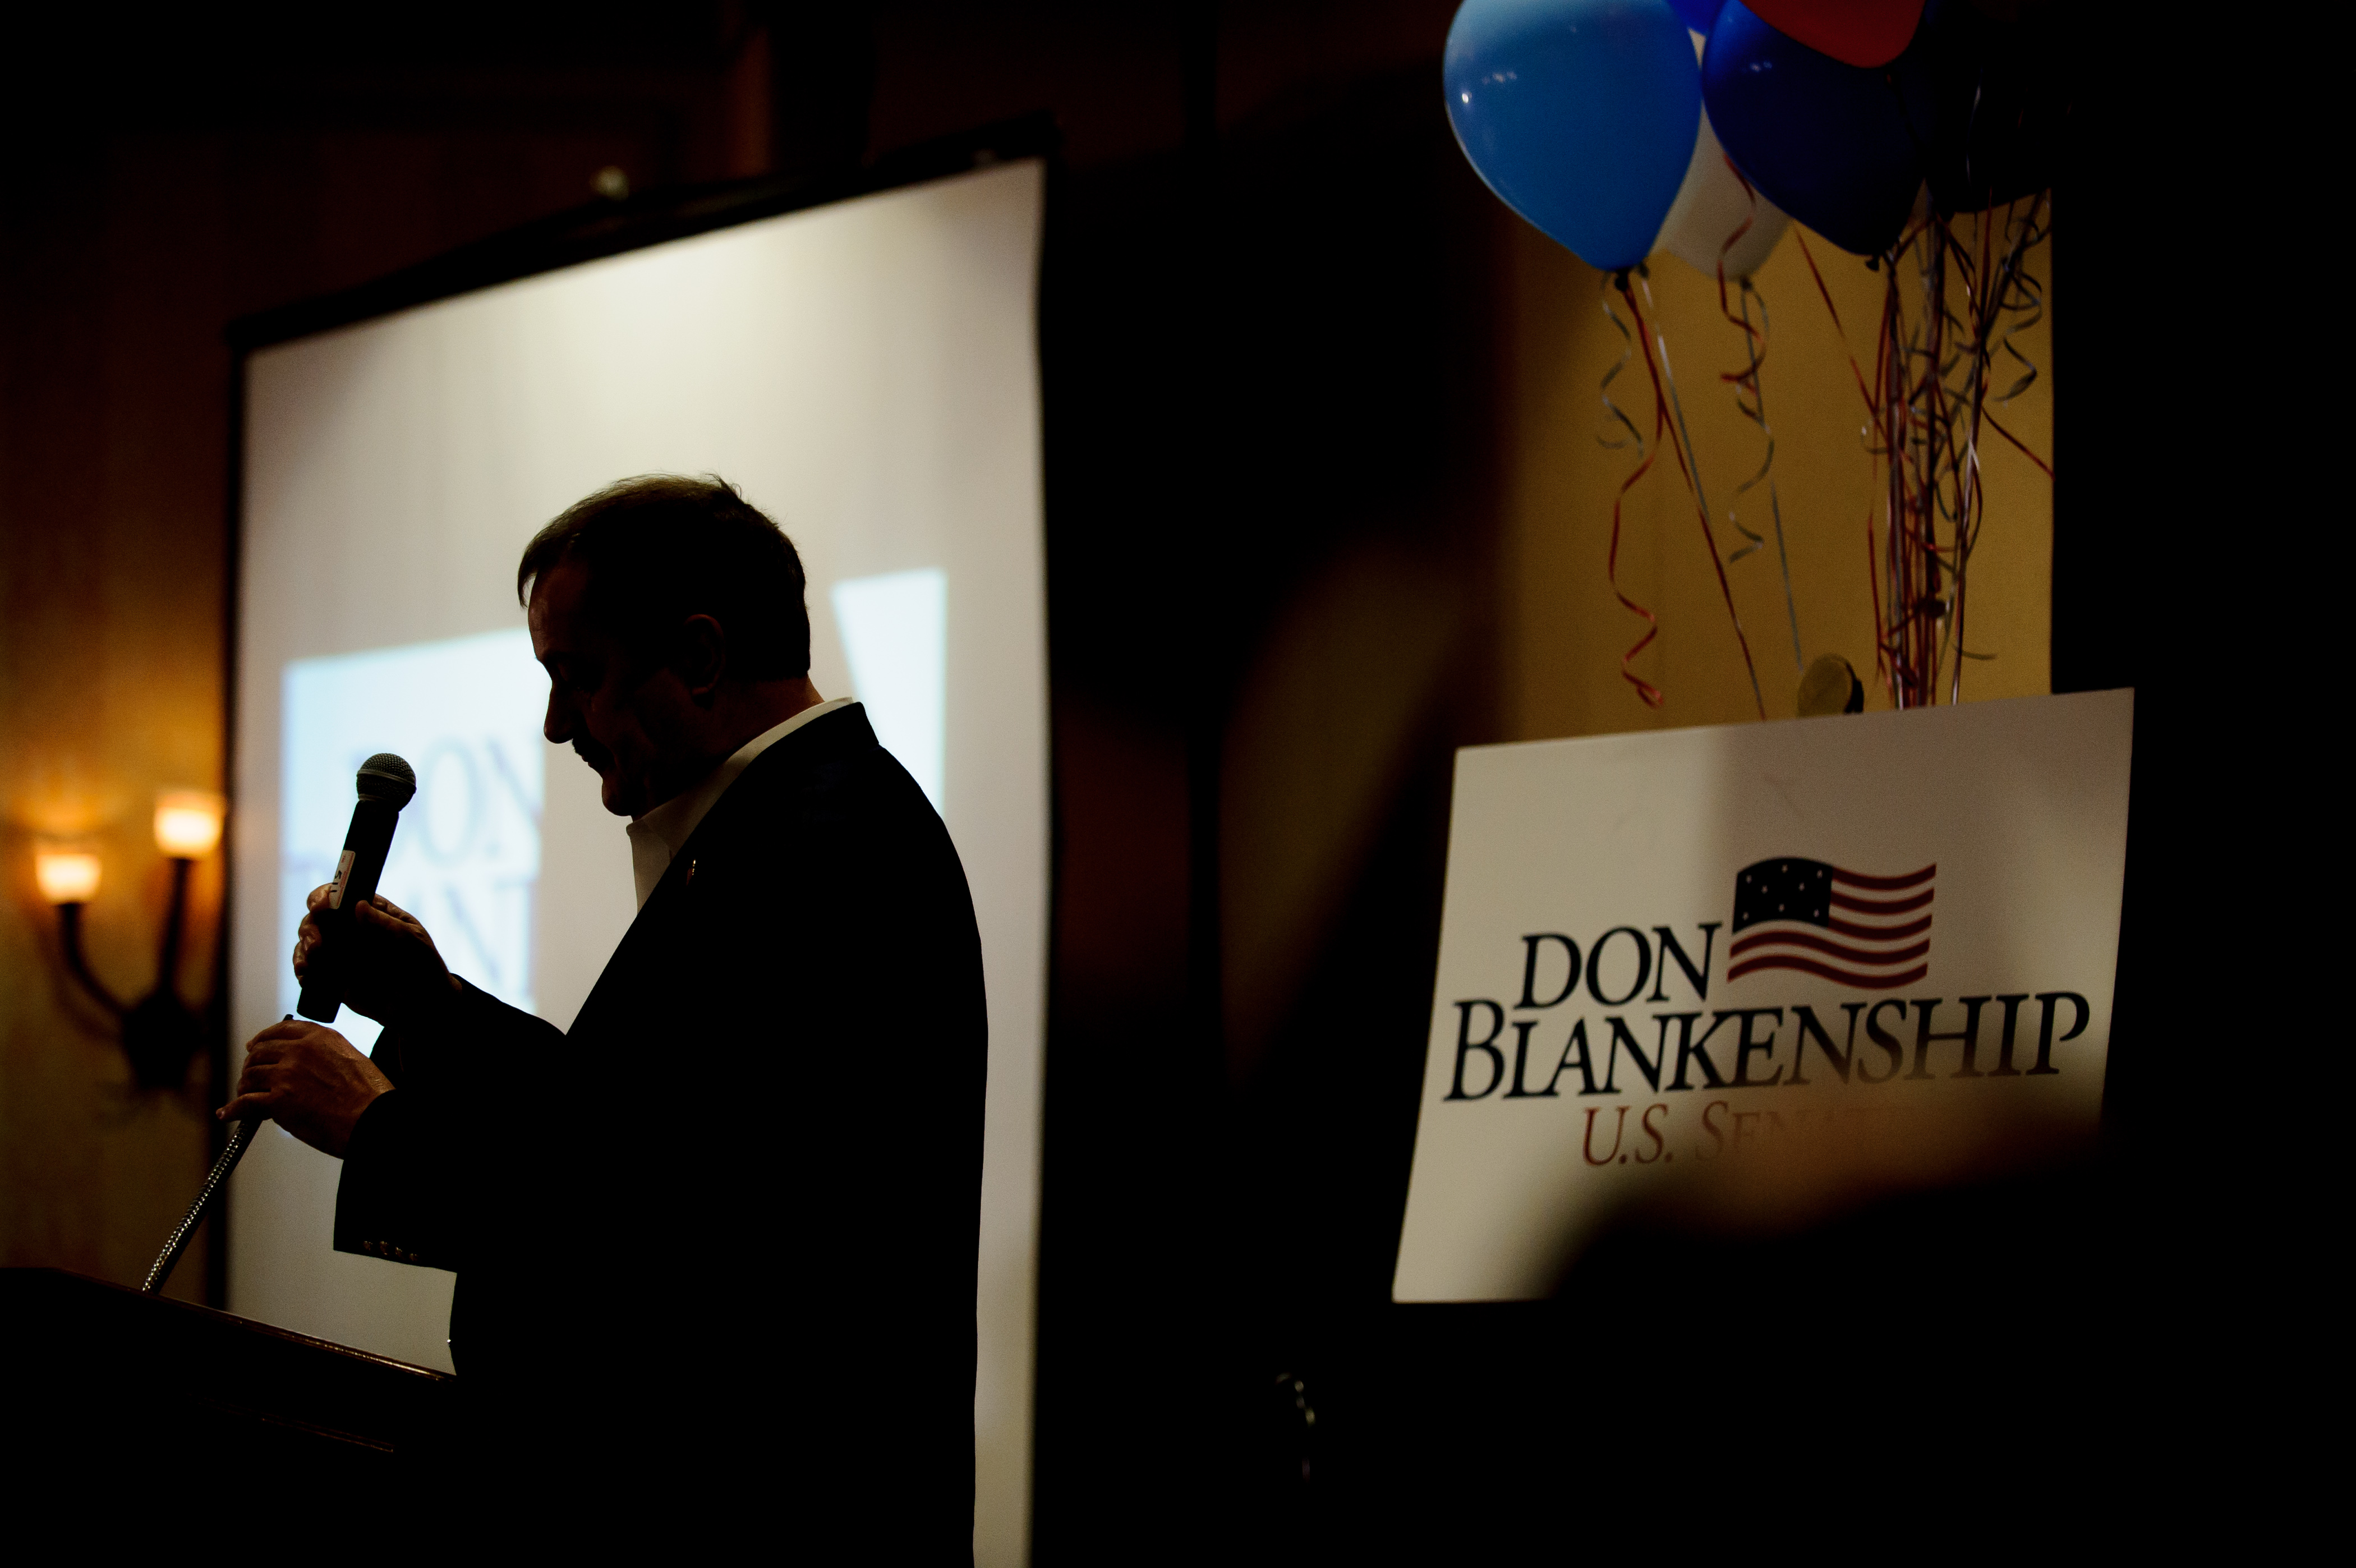 U.S. Senate Republican primary candidate Don Blankenship after addressing supporters following a poor showing in the polls May 8, 2018 in Charleston, West Virginia.